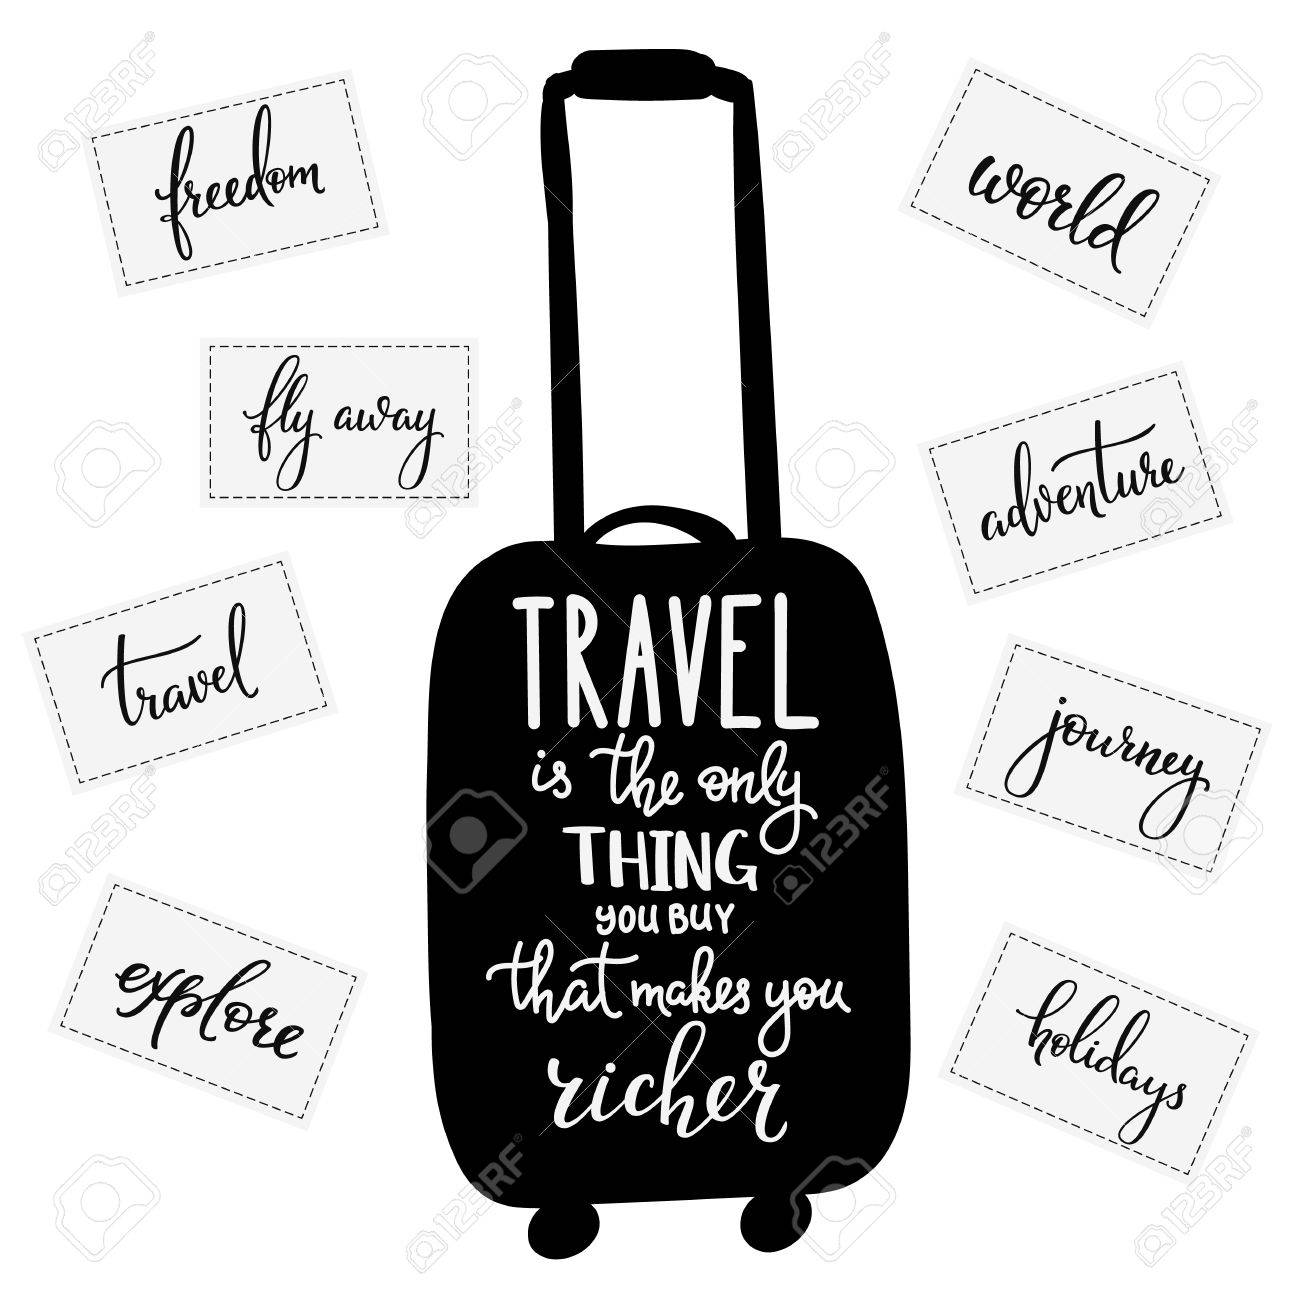 Travel Inspiration Quotes Lettering Only Thing You Can Buy That Makes Richer